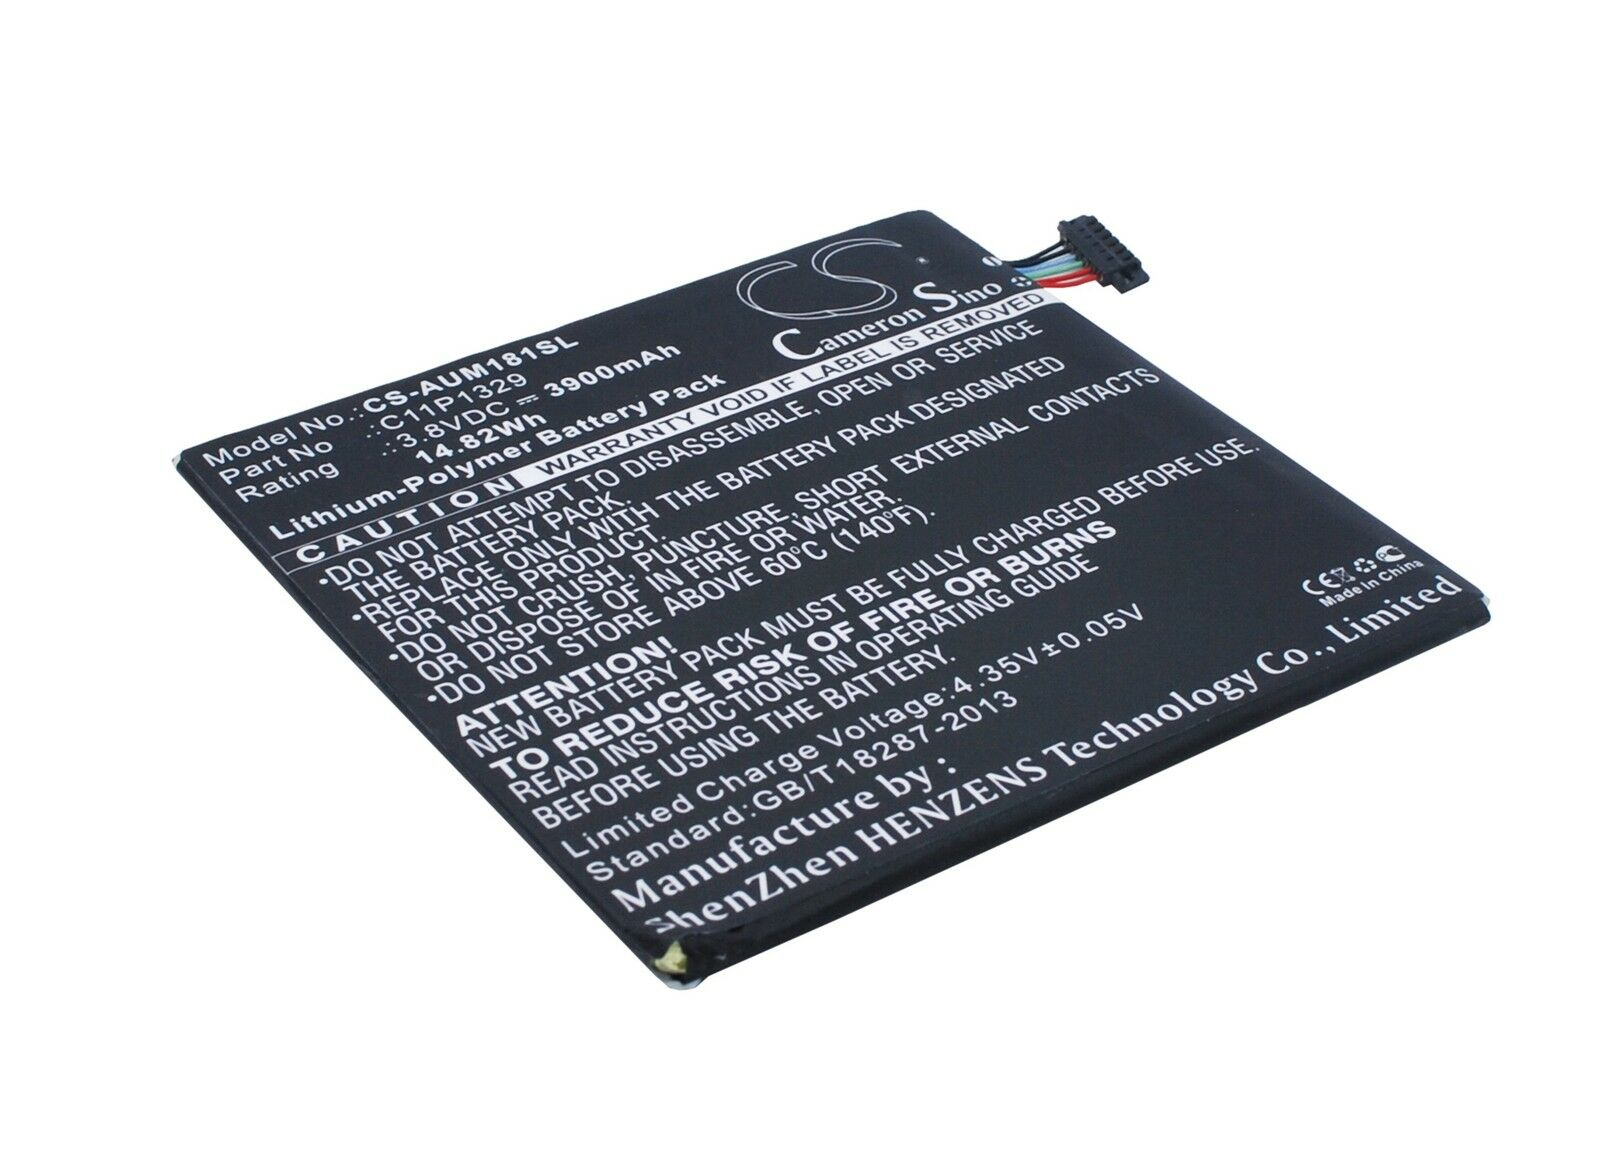 Manual Lenovo Ideatab A2109a Ebook Rowe Ami Jukebox Electronic Circuit Board Repair All Models R80s To R Array Other Tablet U0026 Accs Reader Computers Rh Coastentire Top